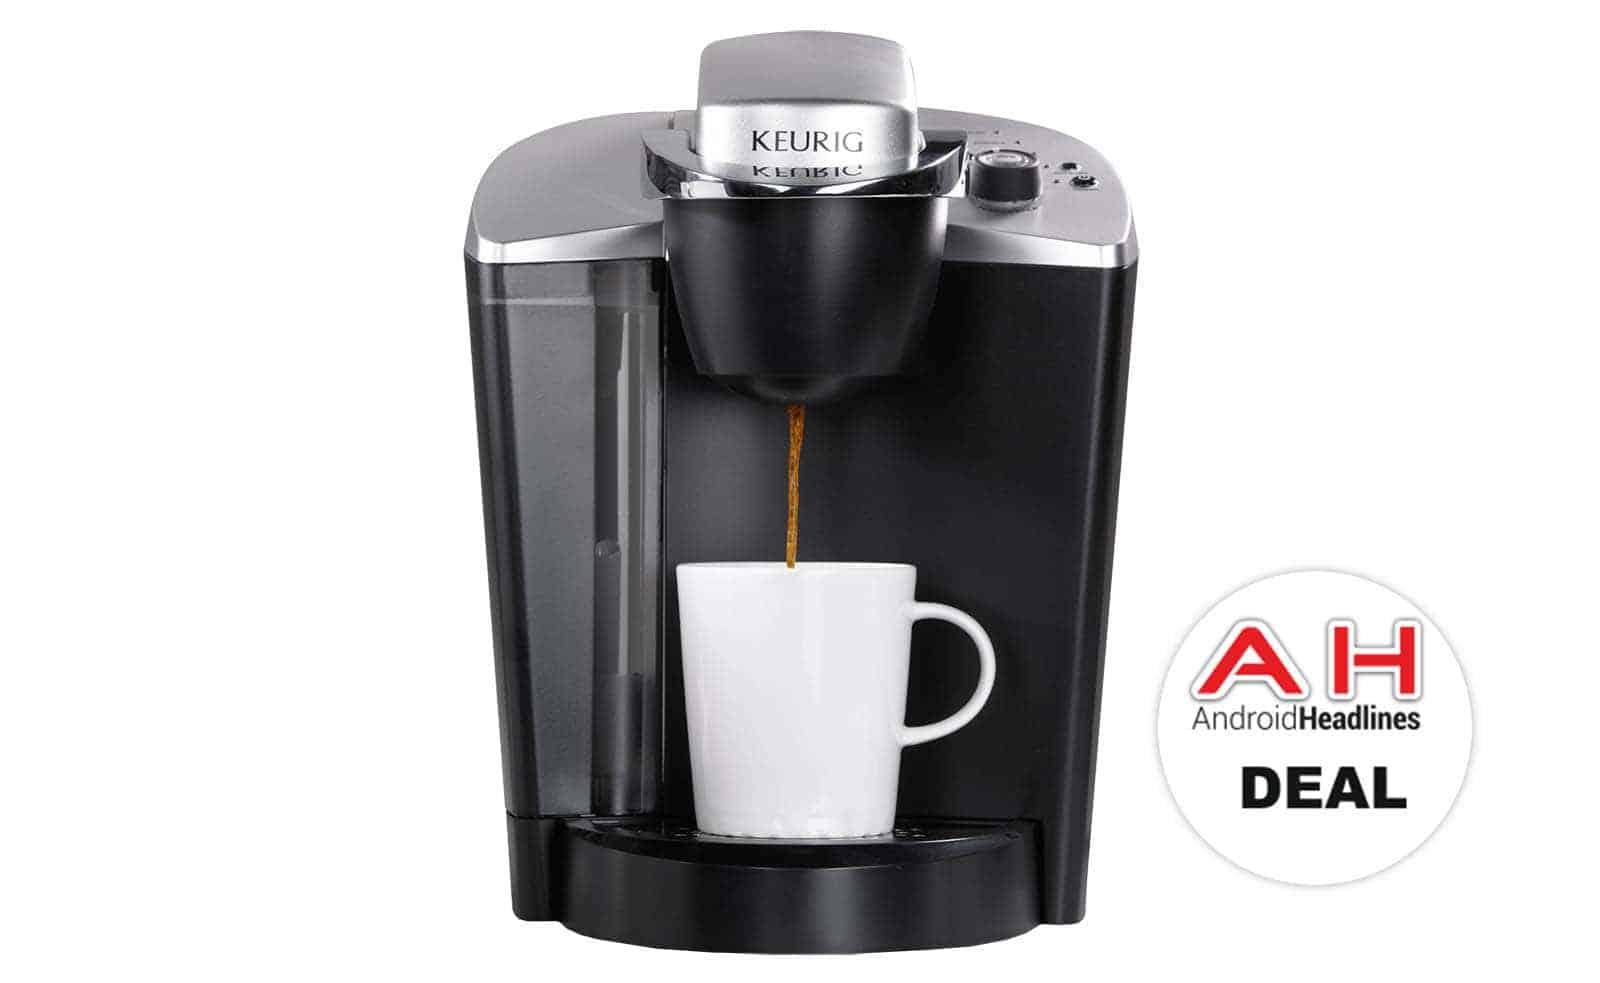 Deal: Keurig OfficePRO K145 Commercial Coffee Brewer For USD 99 -11/24/17 Androidheadlines.com